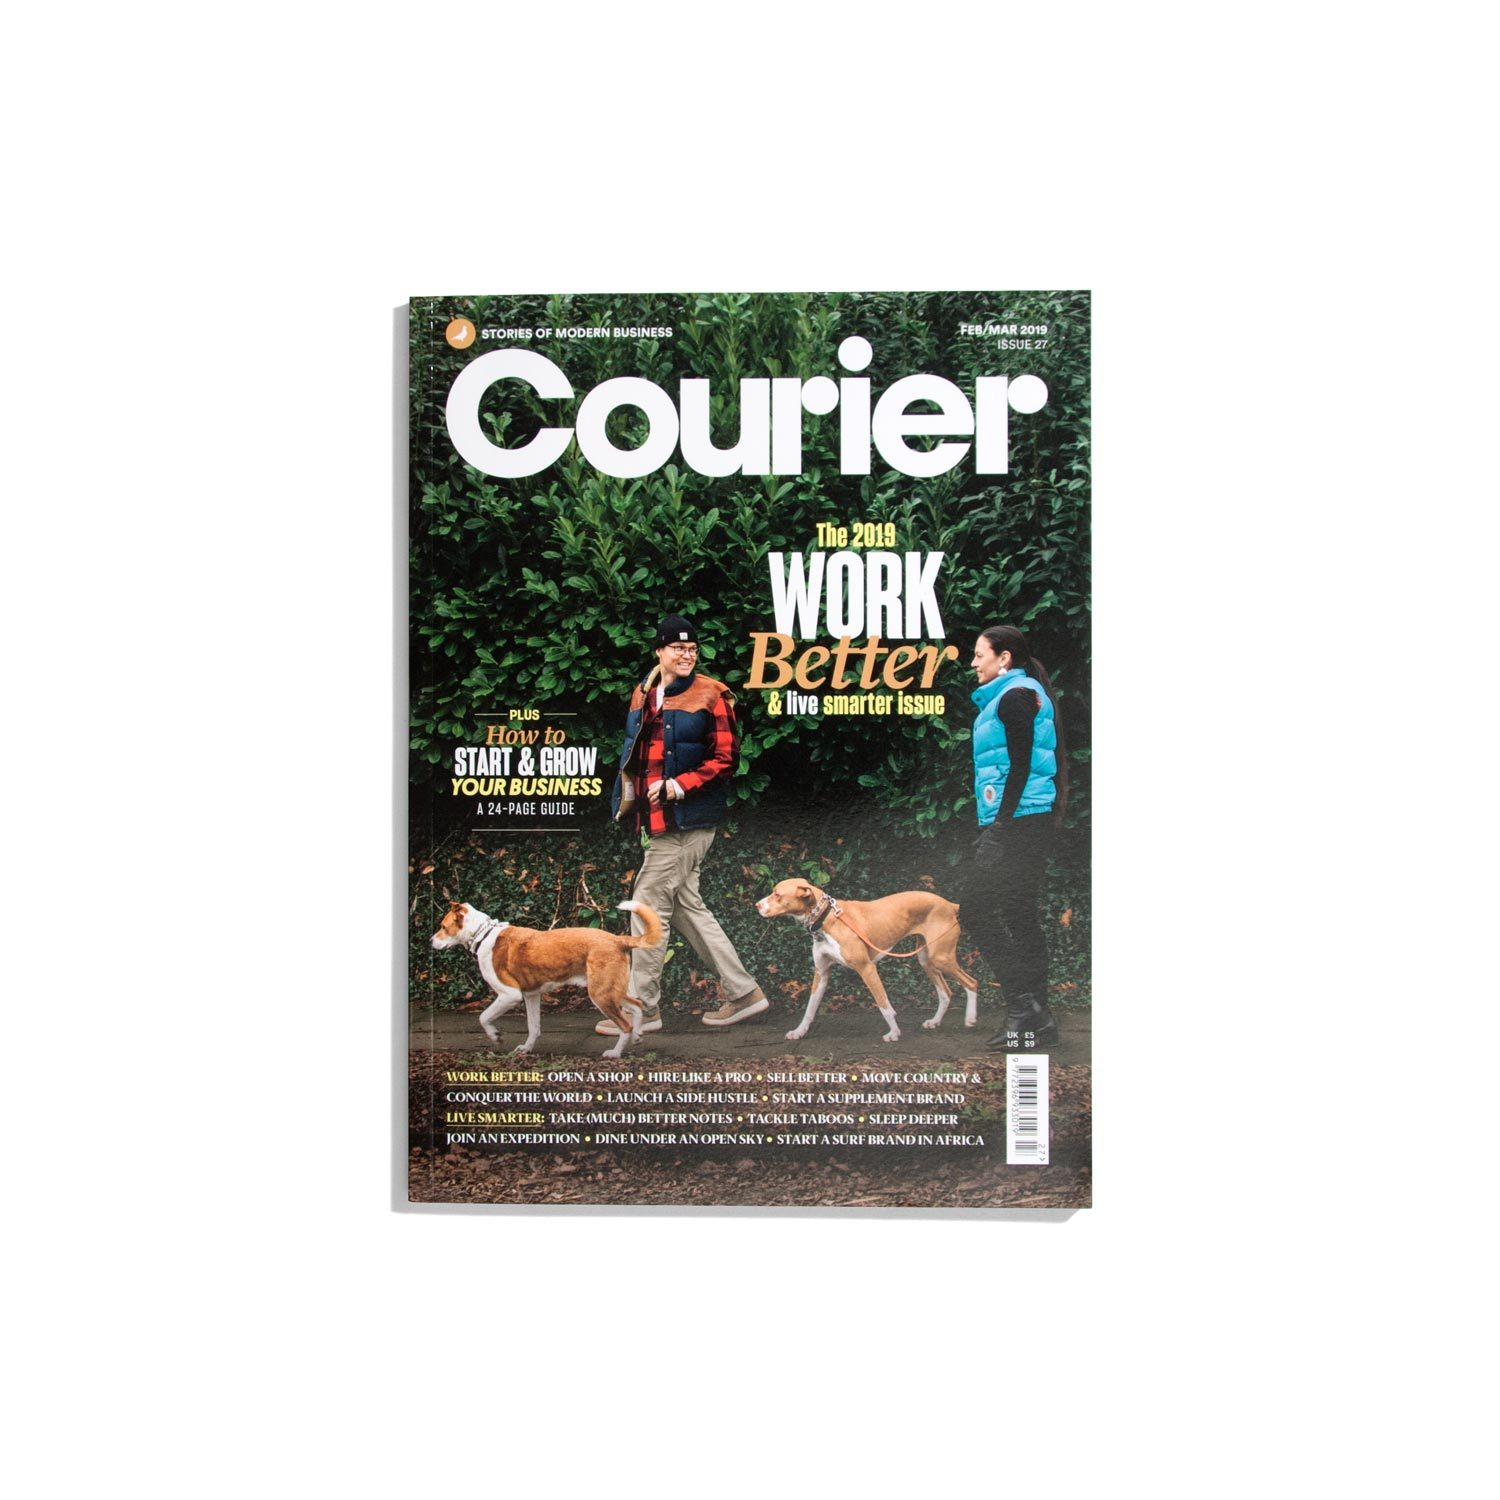 Courier #27 Feb./March 2019